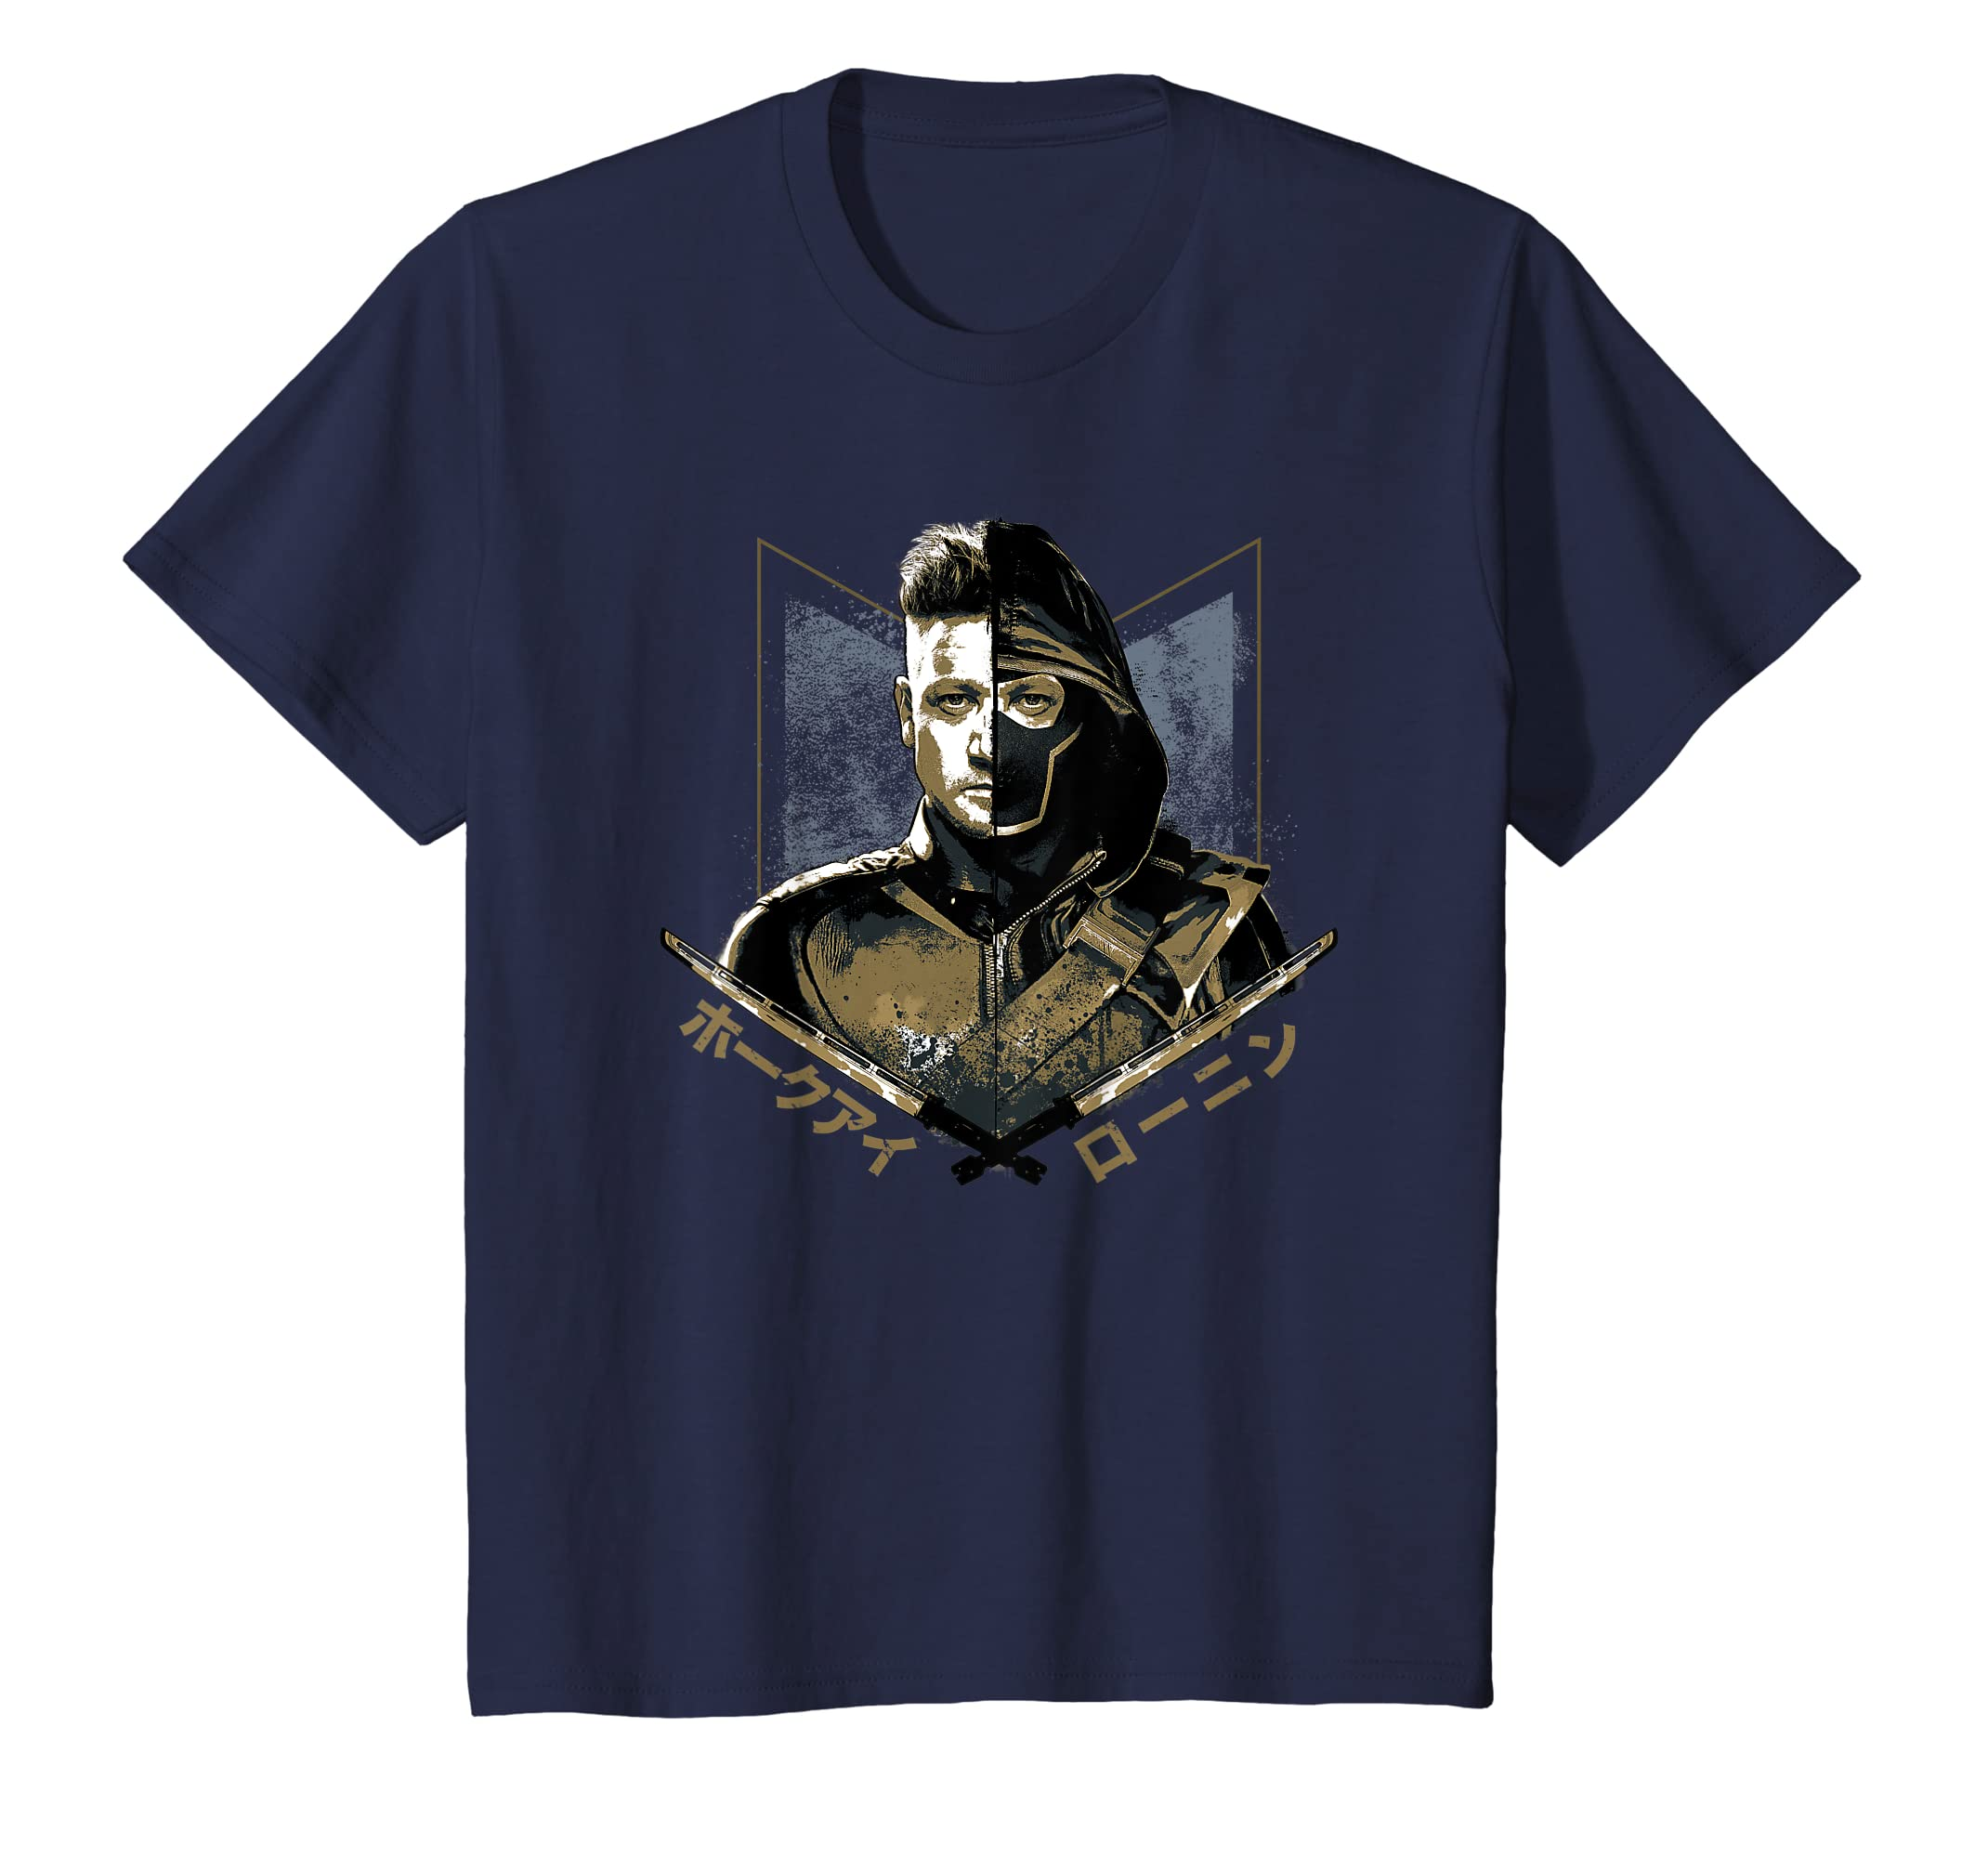 0a00d21e7b8d Amazon.com: Marvel Avengers: Endgame Ronin Hawkeye T-Shirt: Clothing